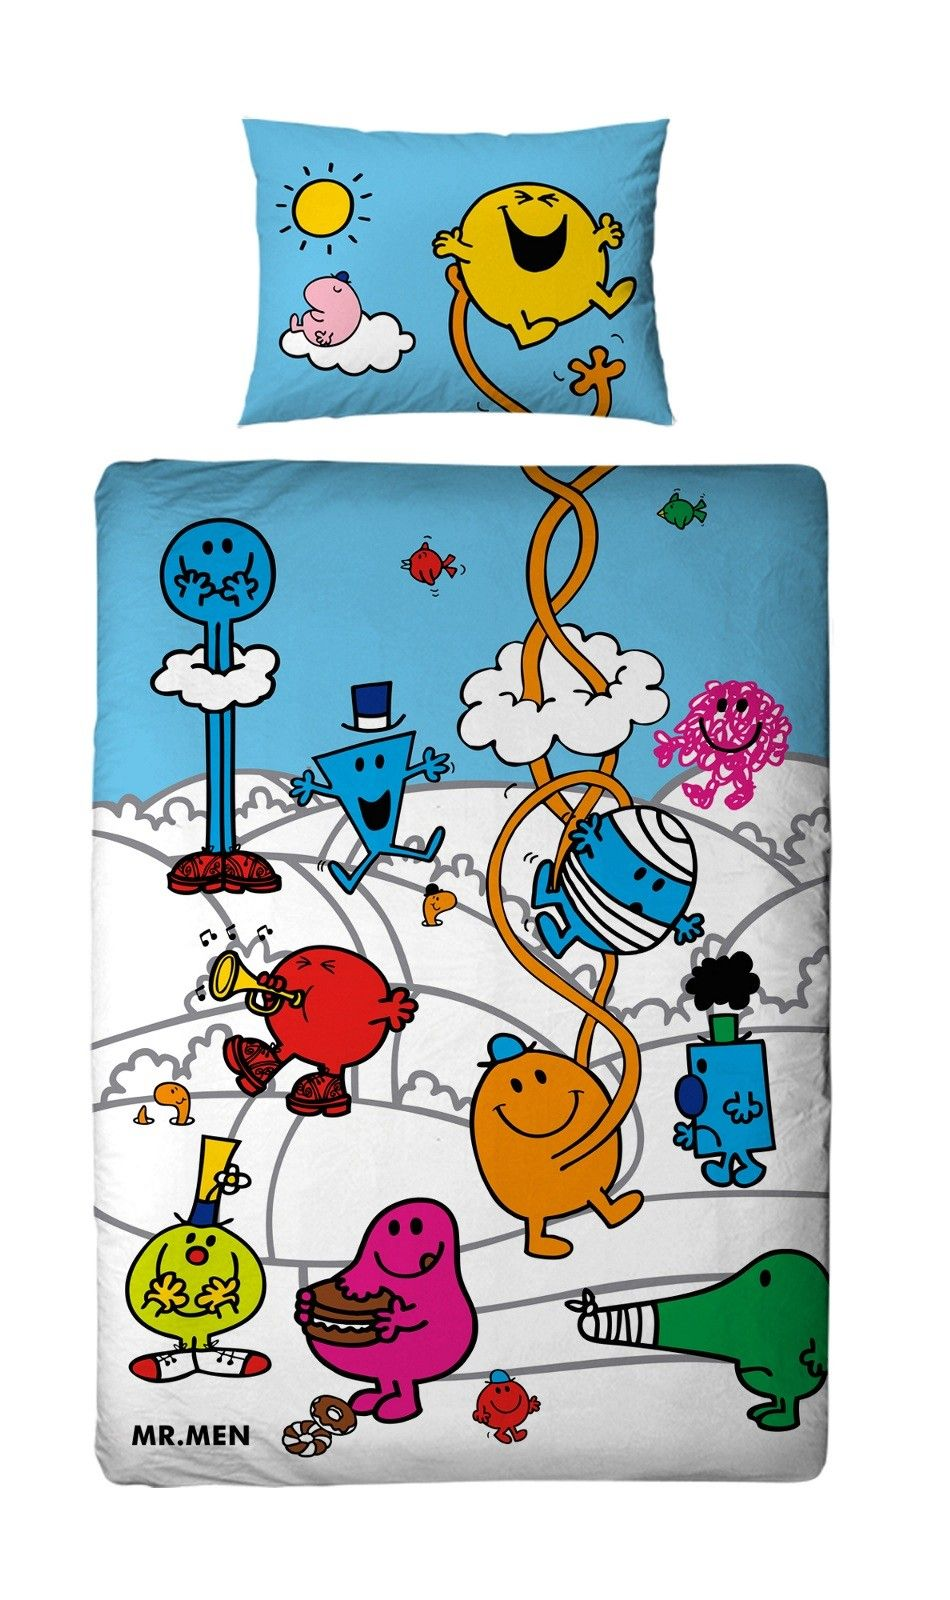 parure de lit enfant r versible mr men little miss